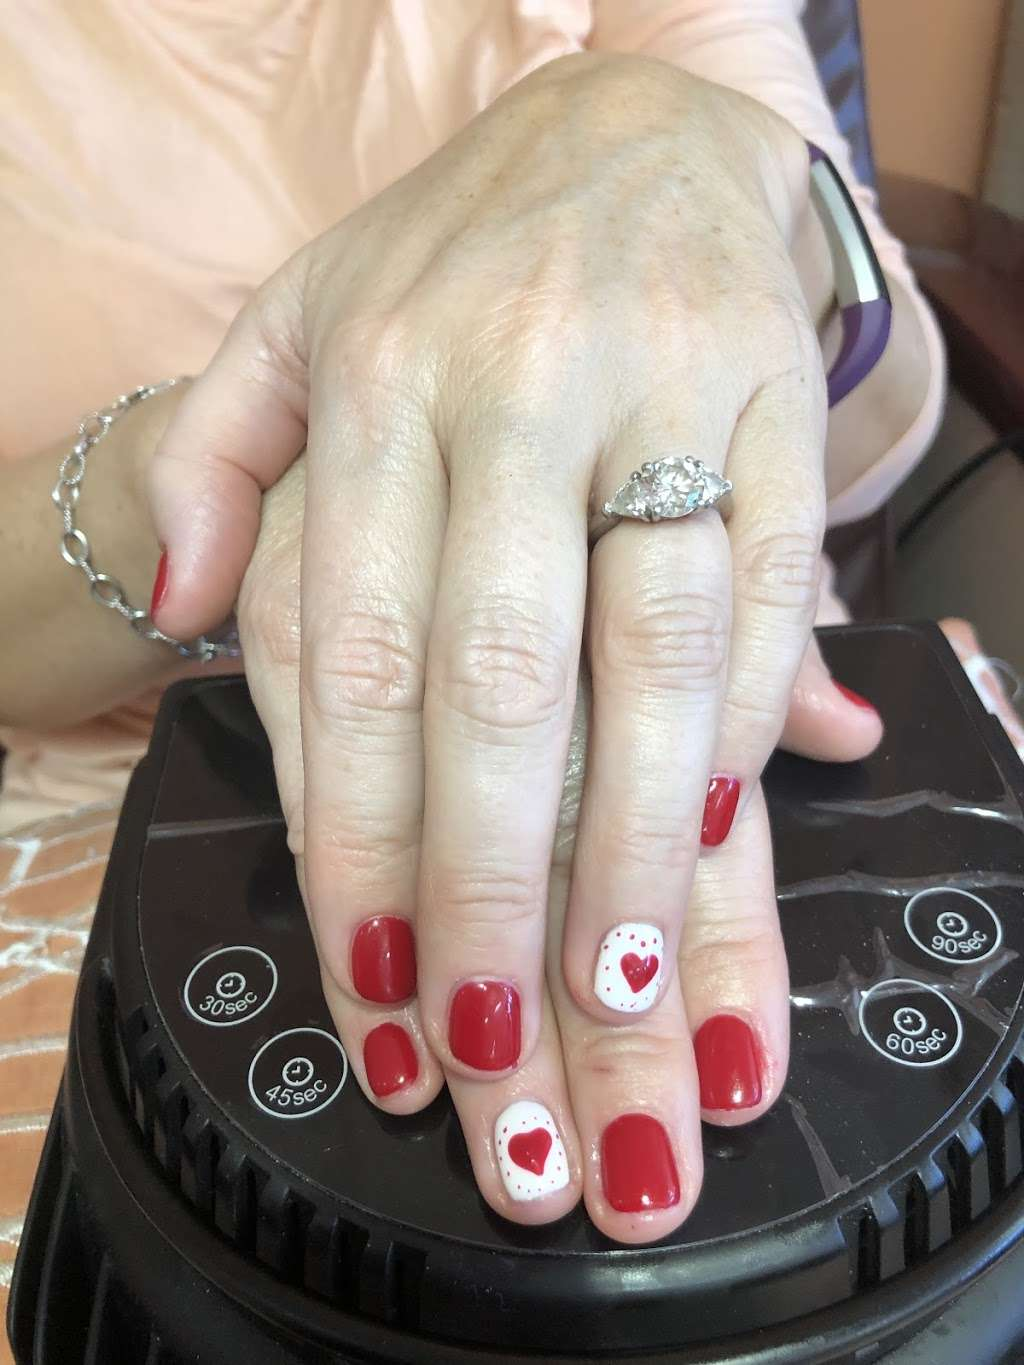 Annie Nails and Spa - hair care  | Photo 10 of 10 | Address: 240 Lakeview Ave, Tyngsborough, MA 01879, USA | Phone: (978) 226-5724